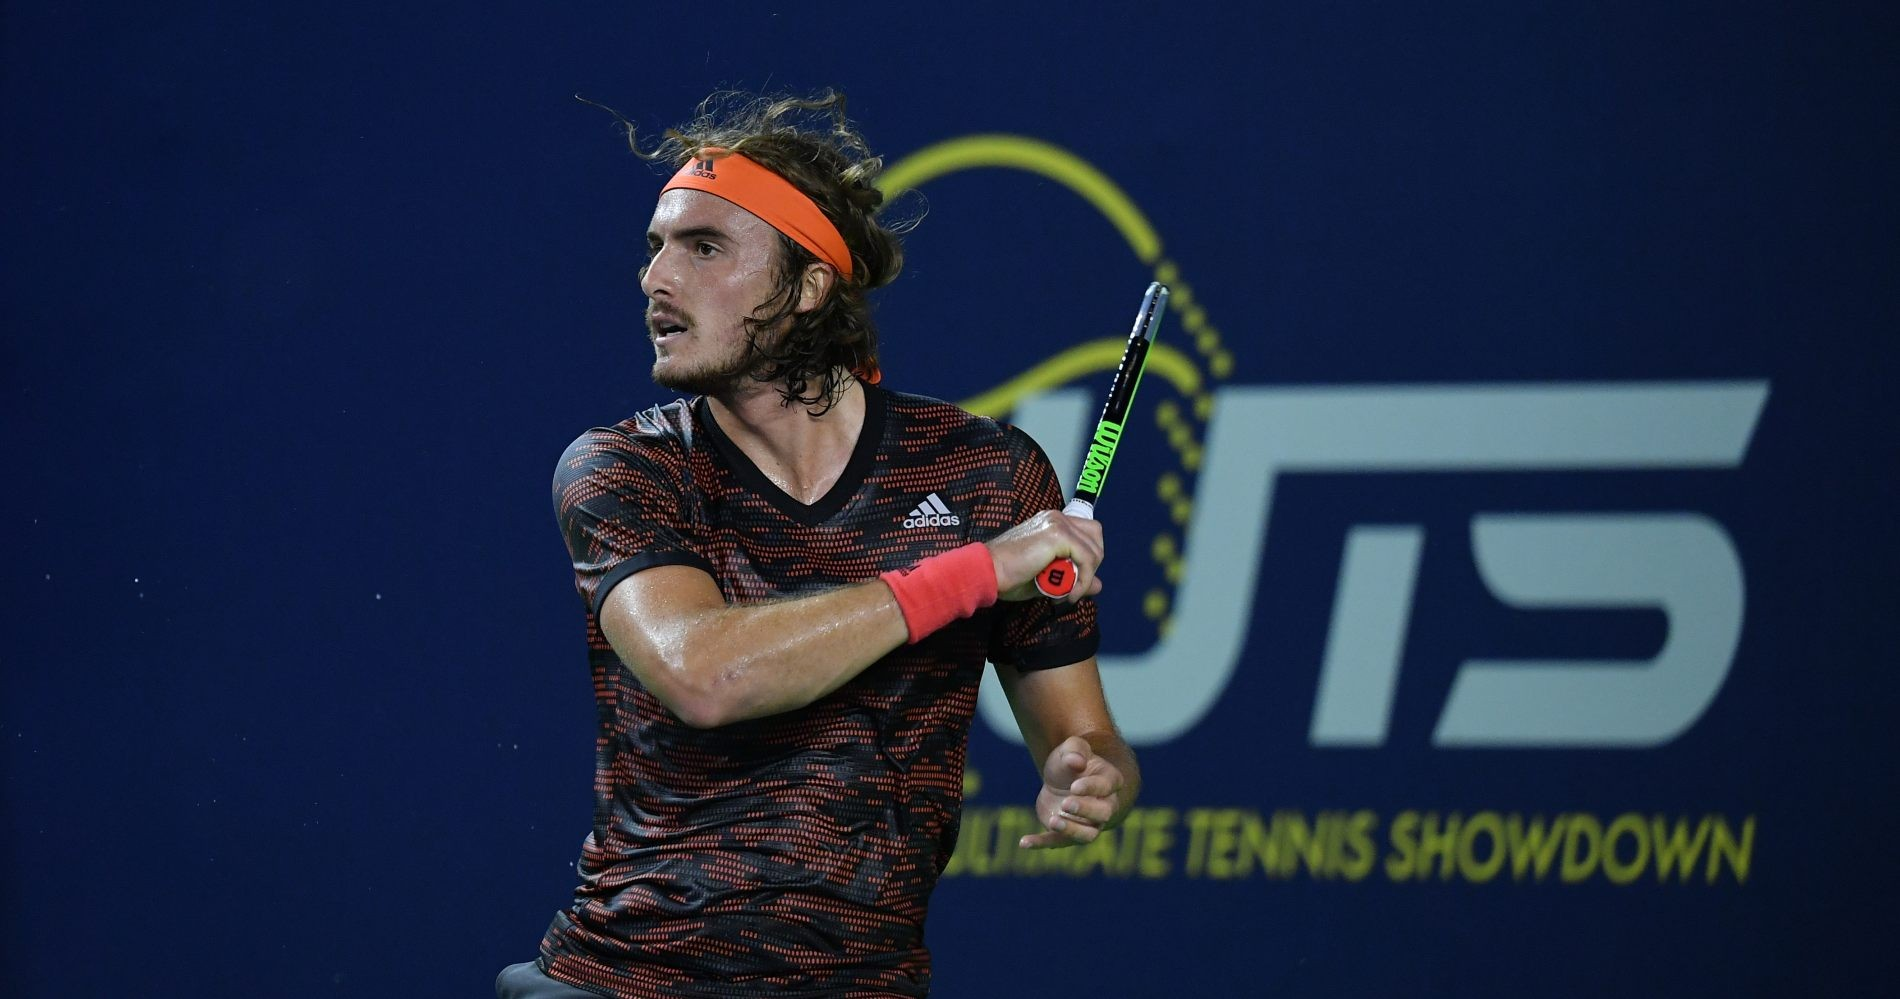 Tsitsipas leads Ultimate Tennis Showdown after Day 6